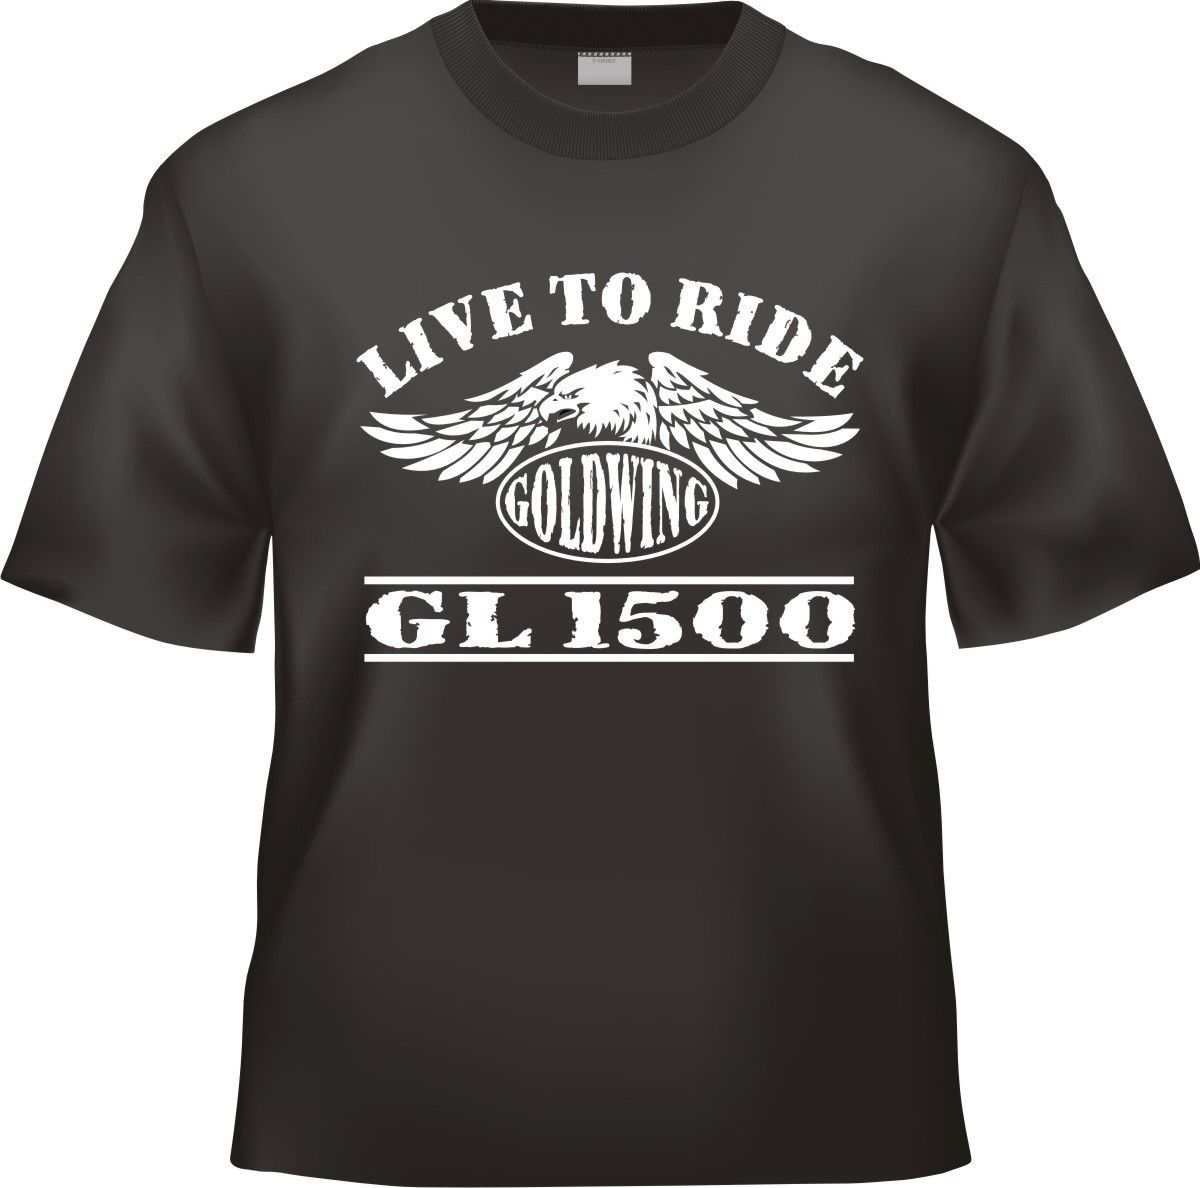 2018 New Summer Tee Shirt New Japanese Motorcycle Goldwing GL 1500 GL1500 Motorcycle T-S ...